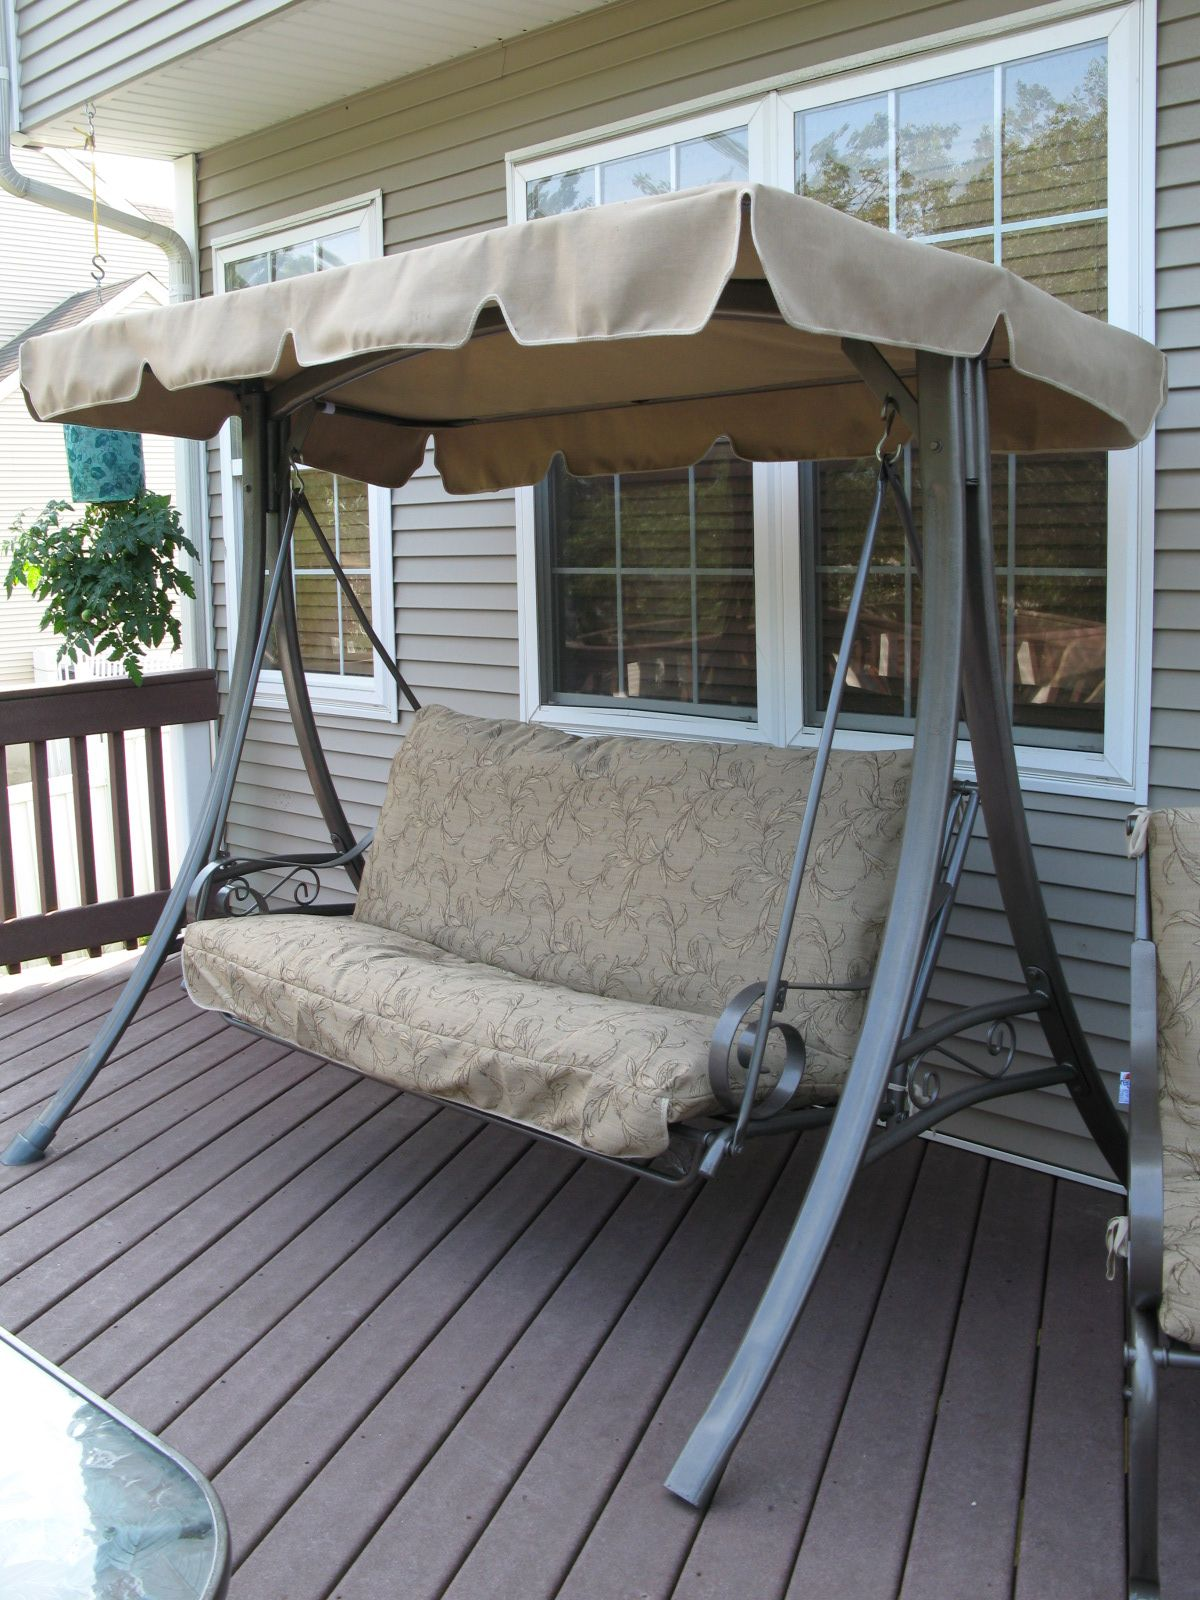 Another Refurbished Swing From Swing Cushion Covers  Http://www.swingcushioncovers.com. Patio IdeasBackyard IdeasOutdoor ...